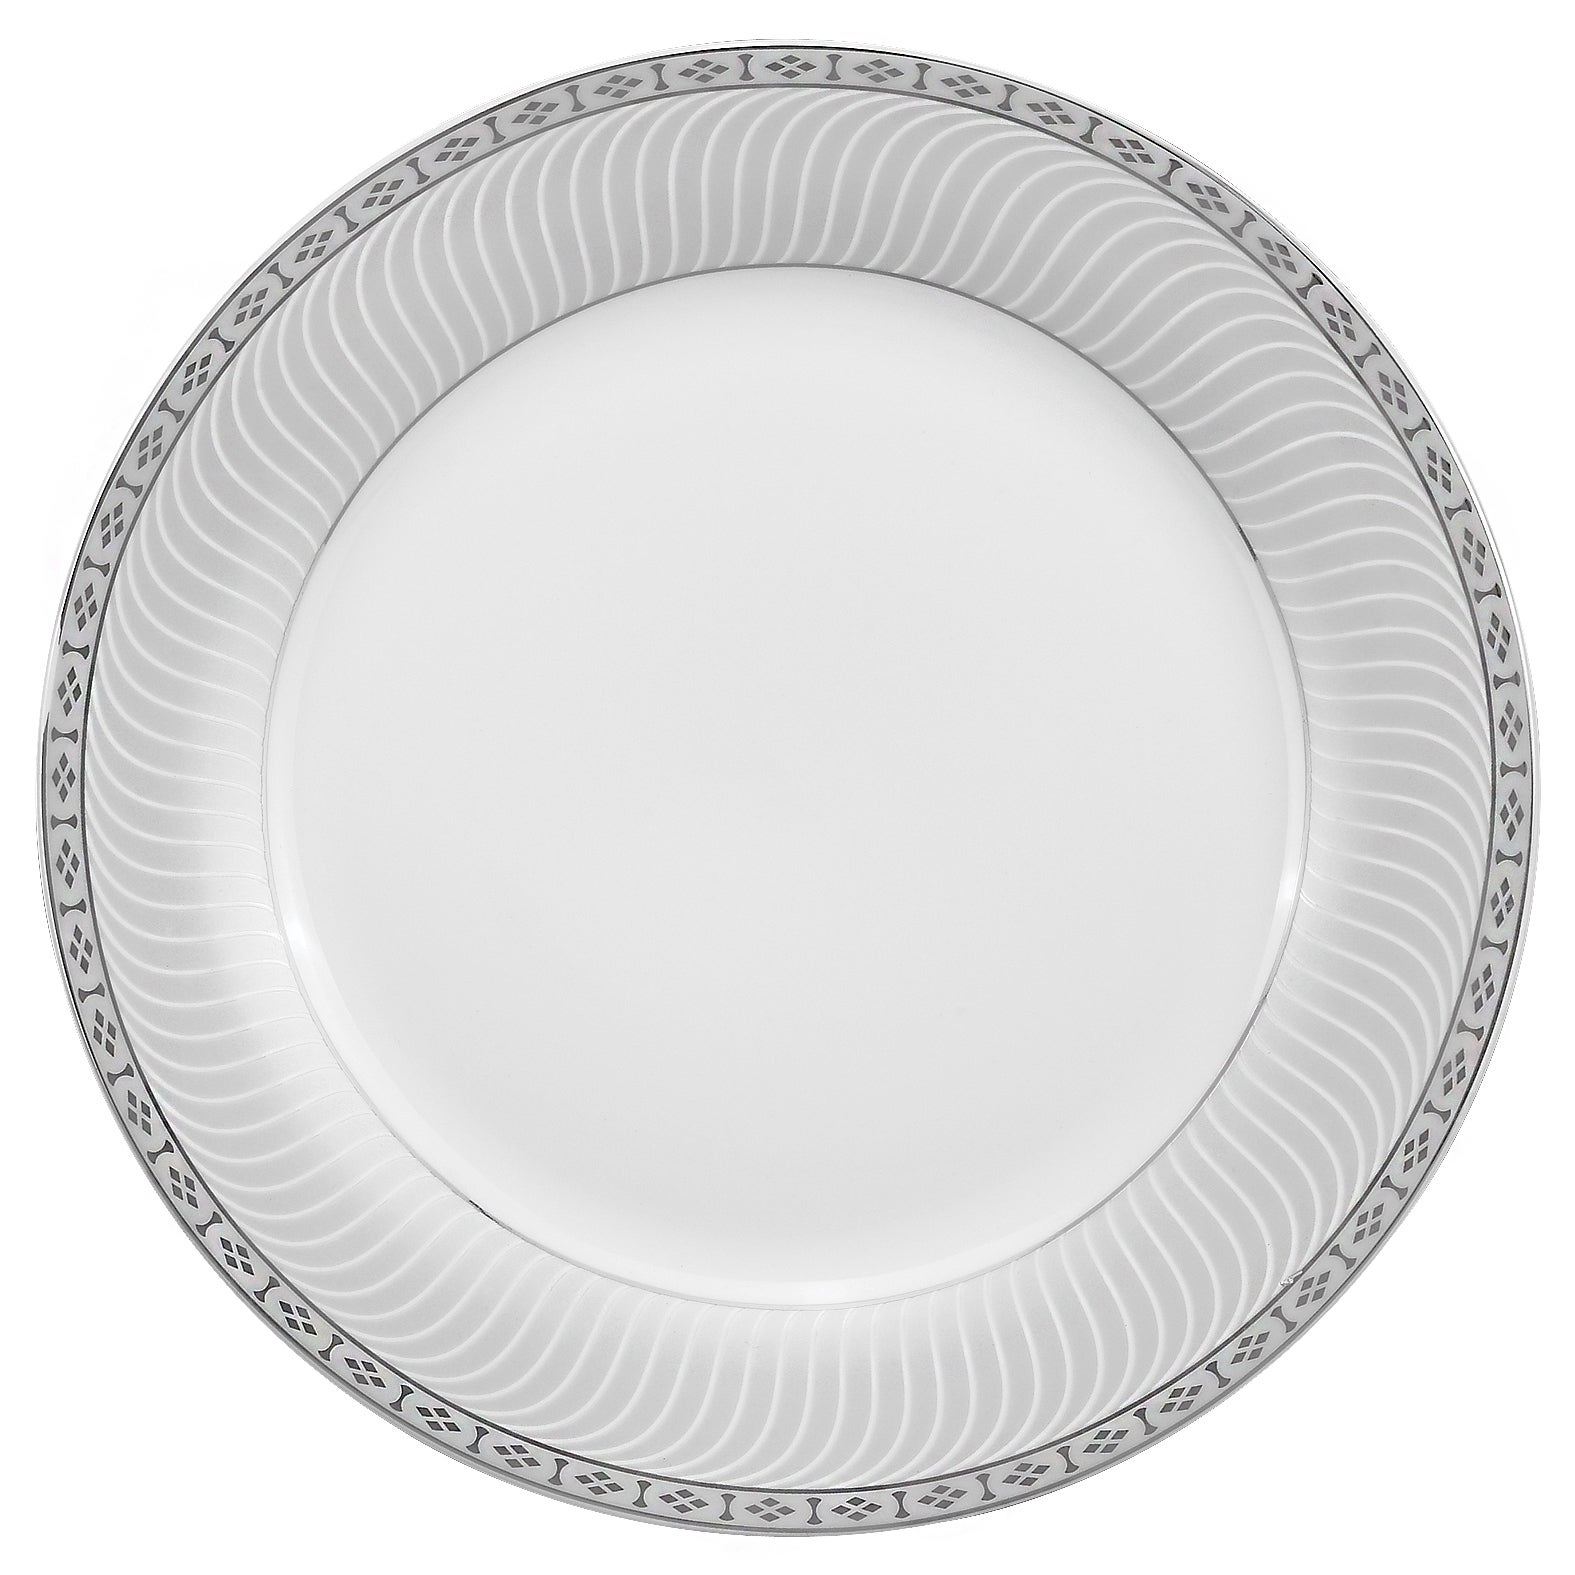 Shop Lorren Home Trends 57-piece Porcelain Silver Accent Dinnerware Set - On Sale - Free Shipping Today - Overstock.com - 8418974  sc 1 st  Overstock & Shop Lorren Home Trends 57-piece Porcelain Silver Accent Dinnerware ...